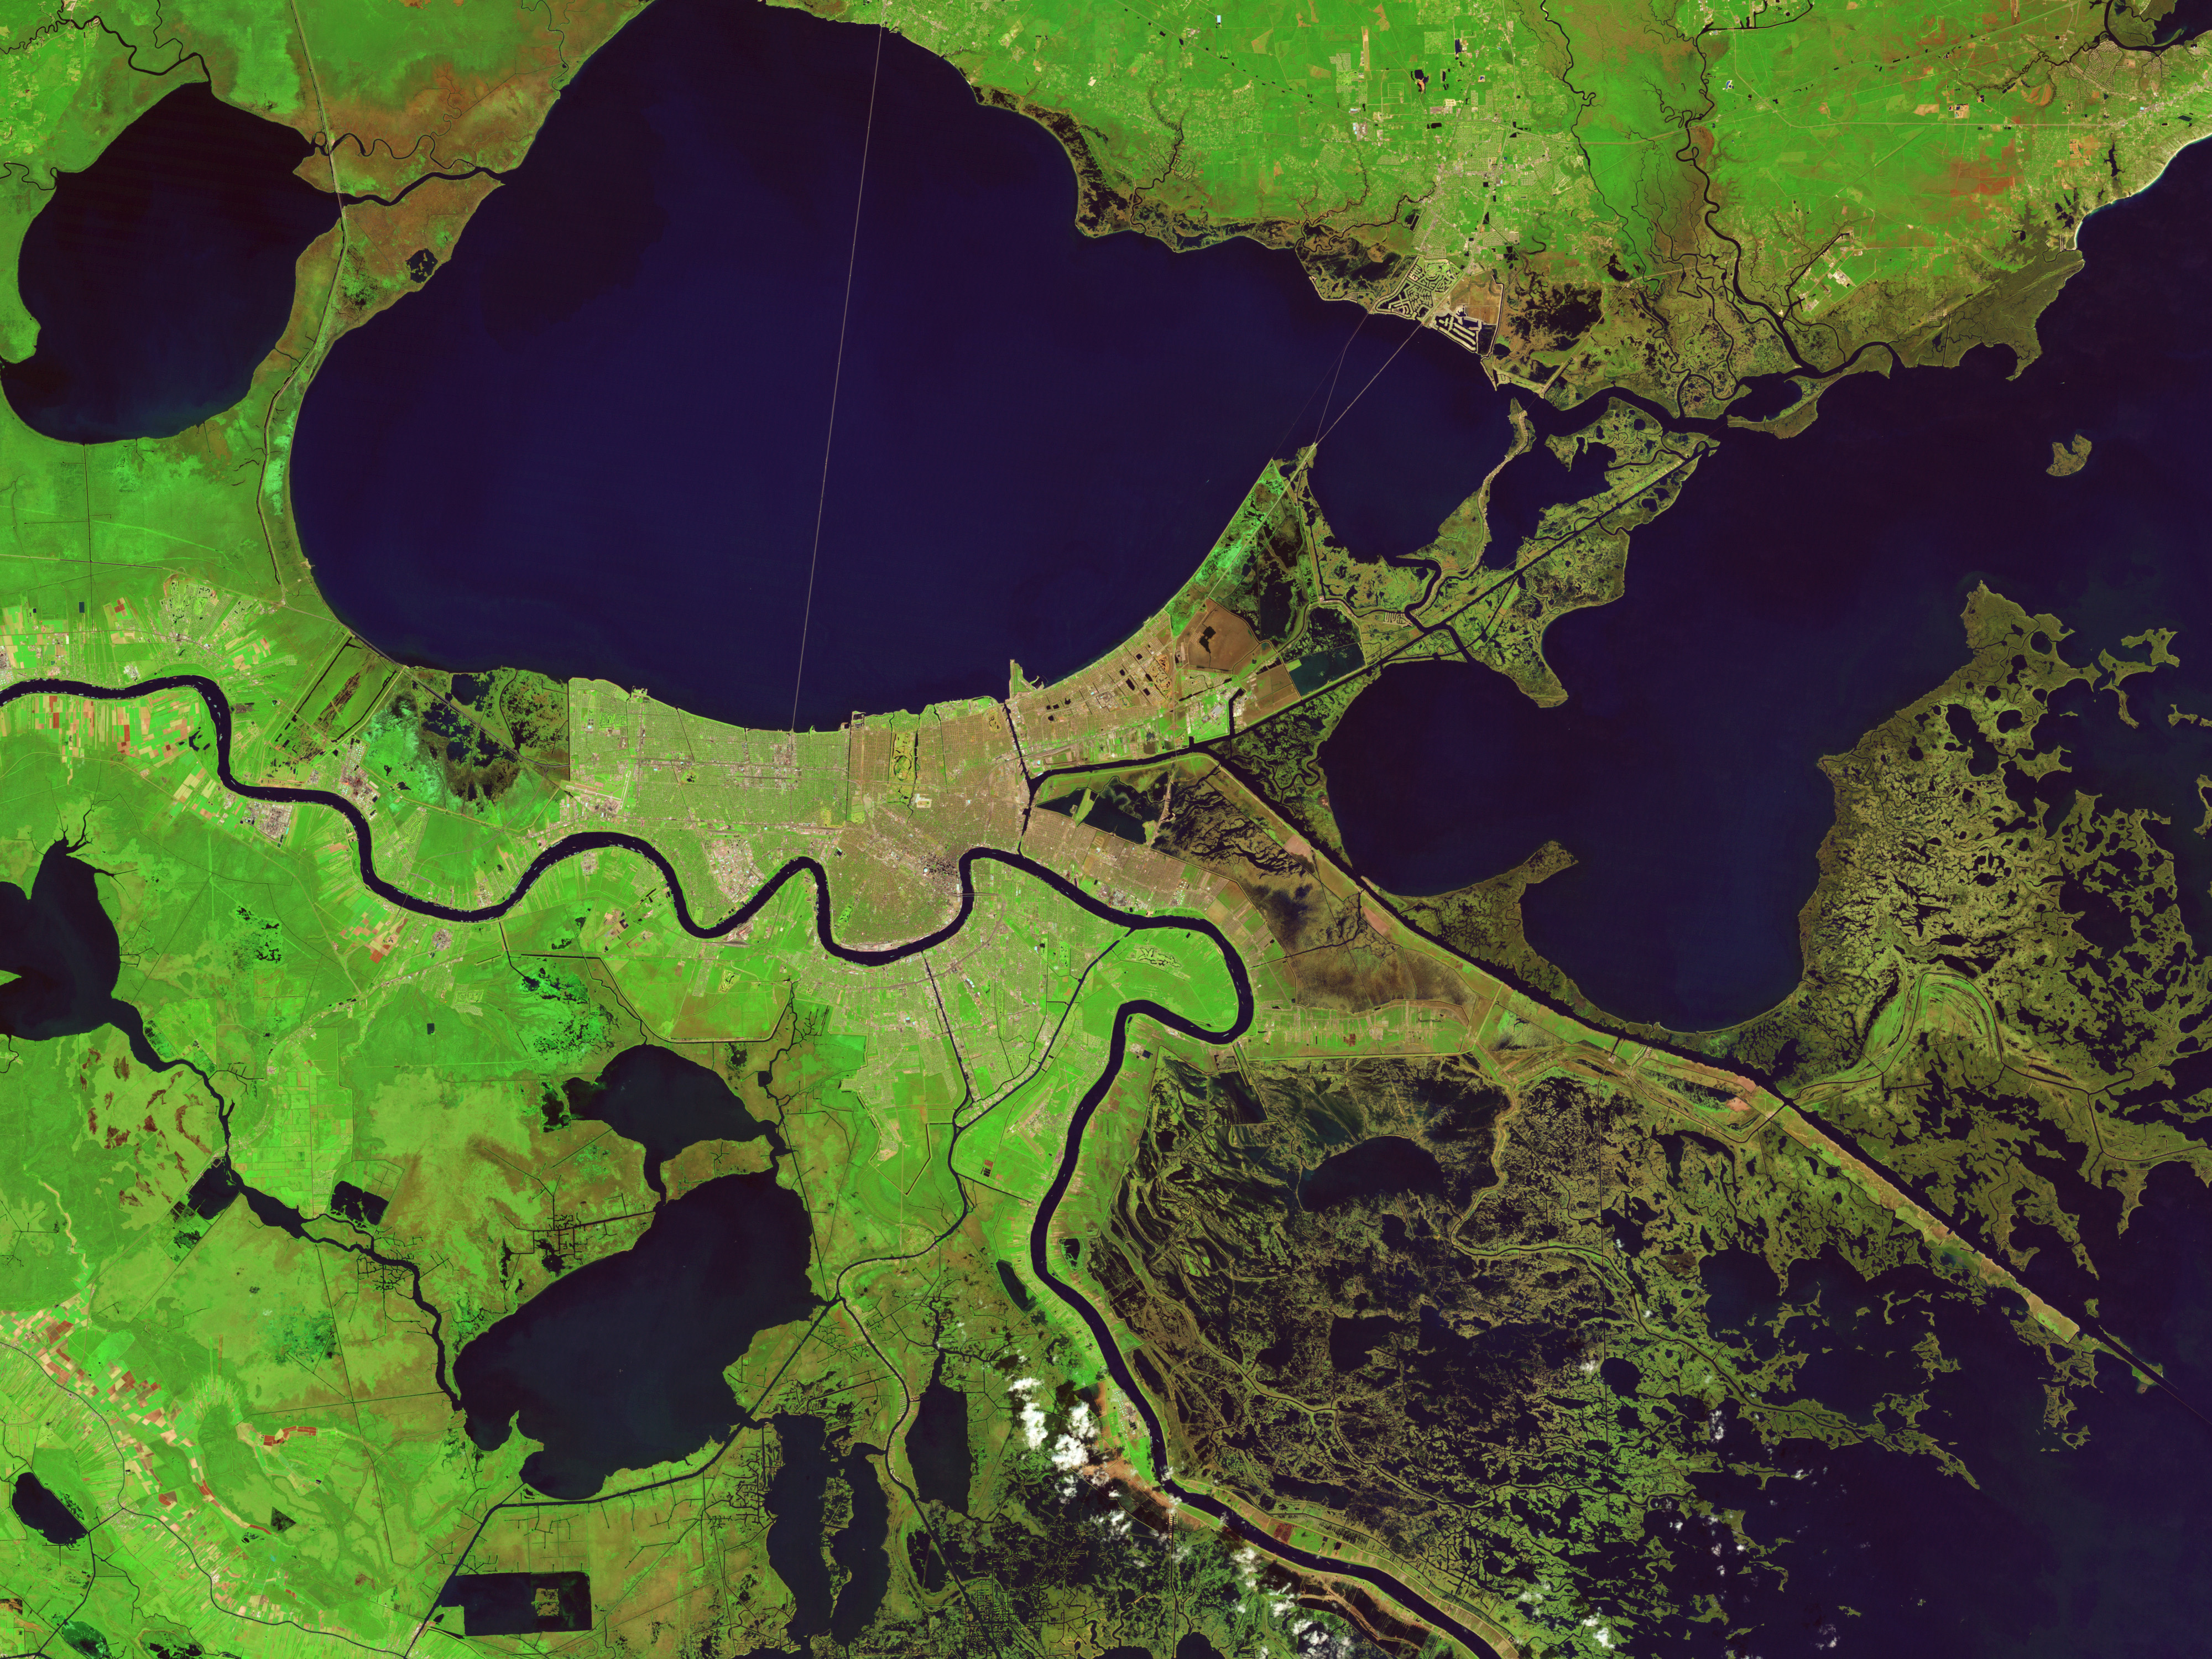 hurricane katrina nasa earth observatory - photo #24